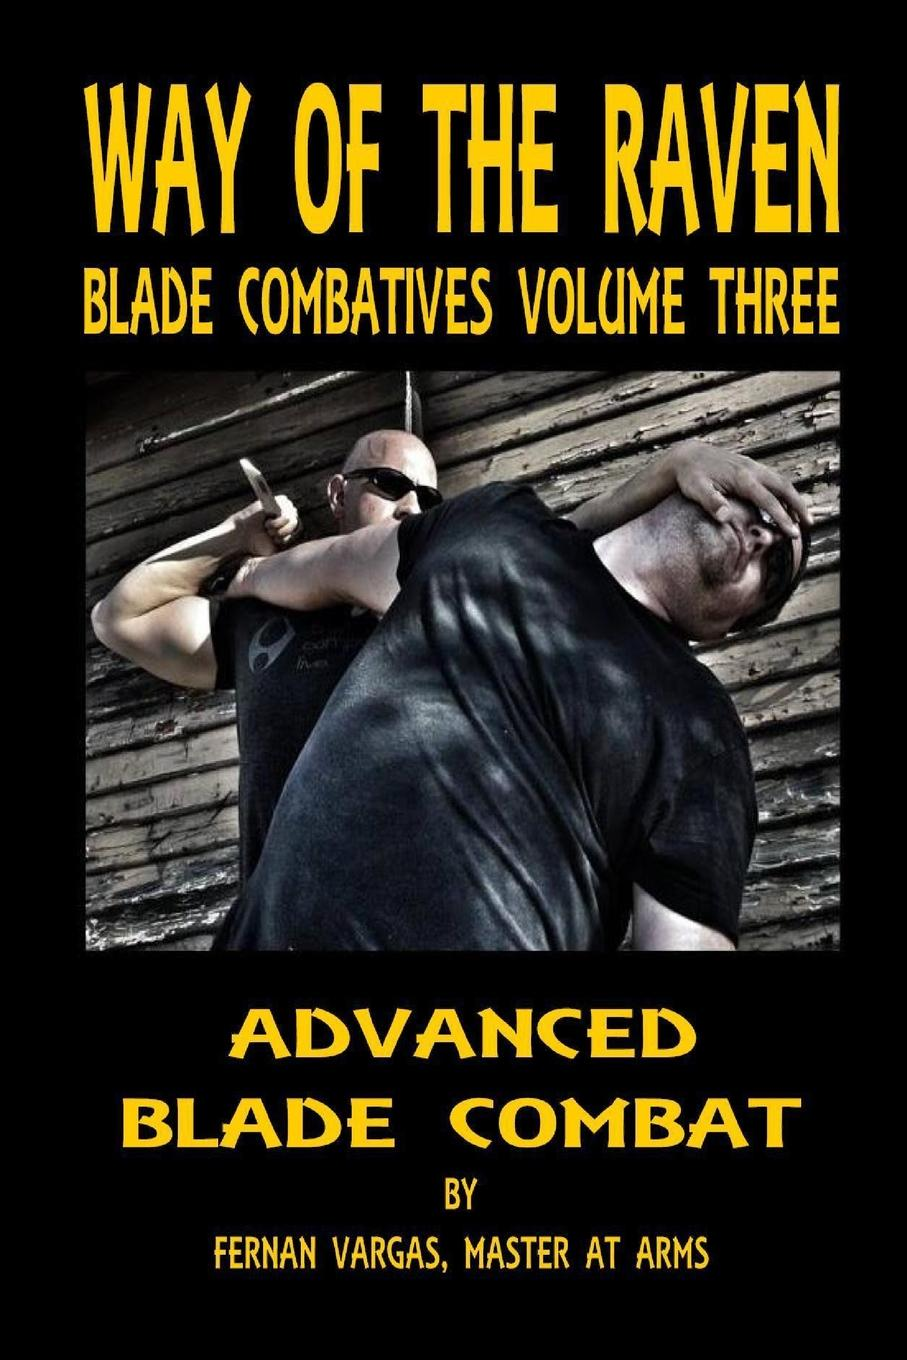 Fernan Vargas Way of the Raven Blade Combatives Volume 3. Advanced Blade Combat fernan vargas joseph truncale surviving the active killer